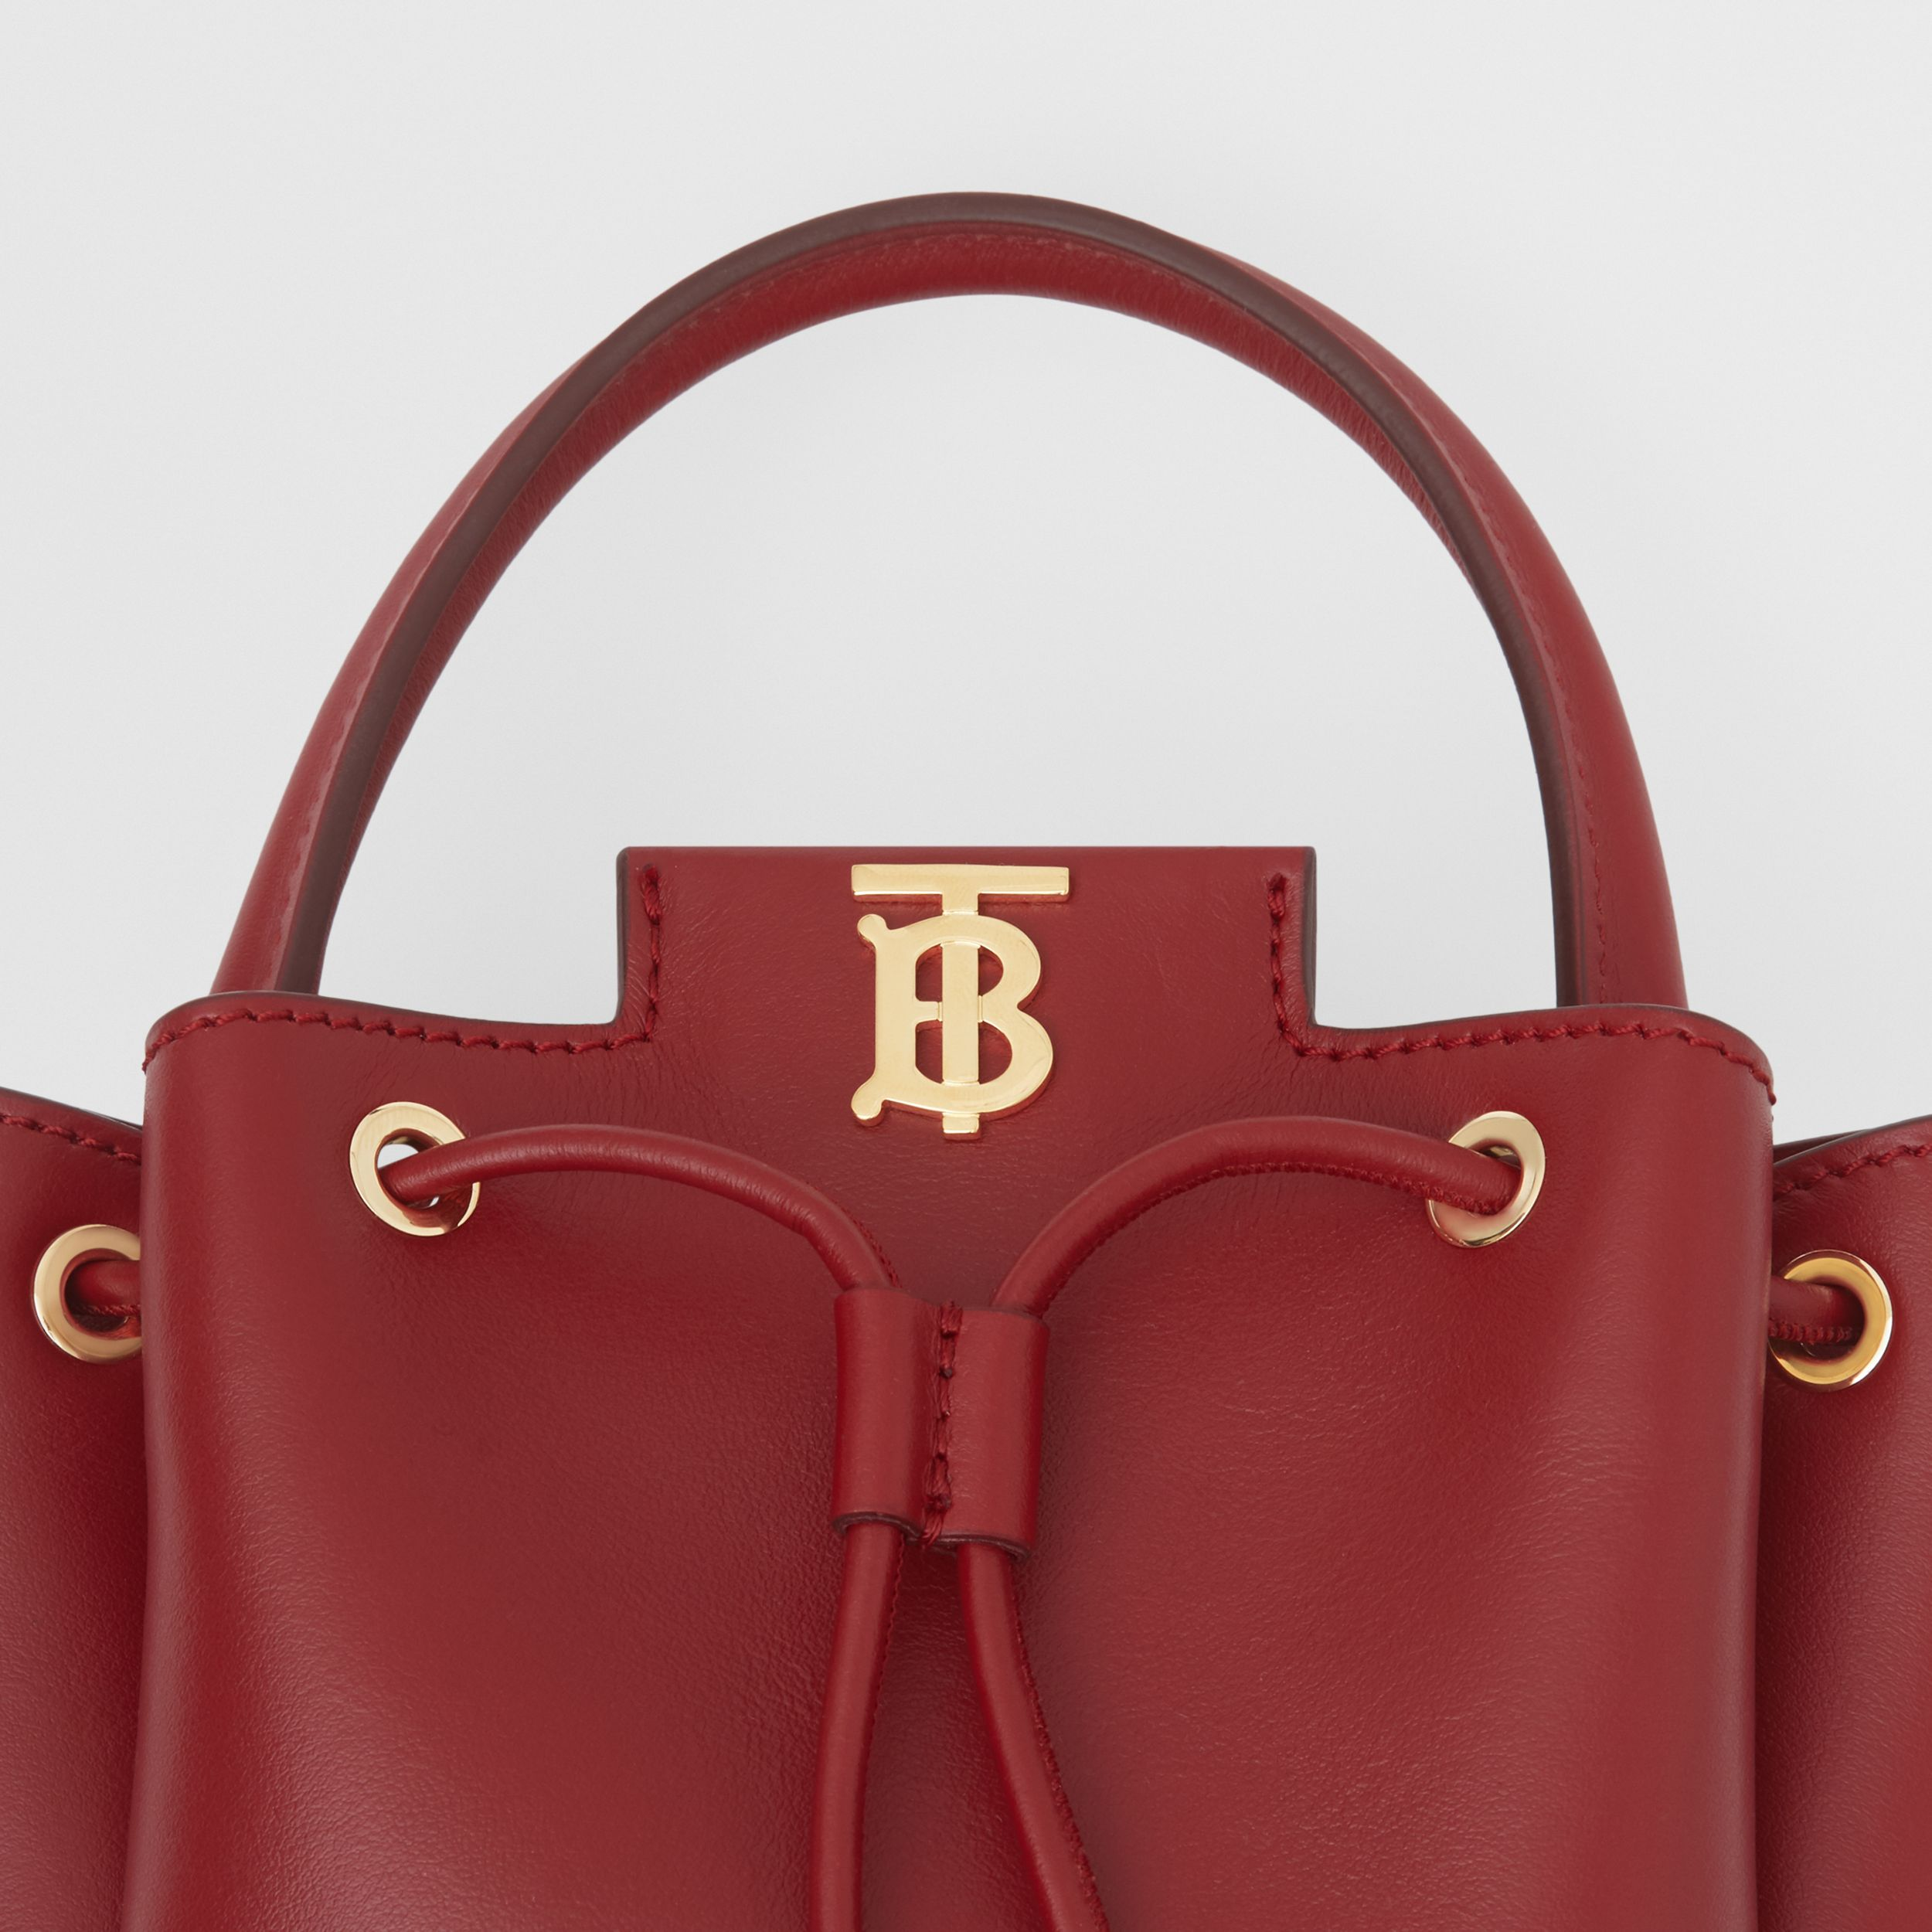 Monogram Motif Leather Bucket Bag in Dark Carmine - Women | Burberry - 2